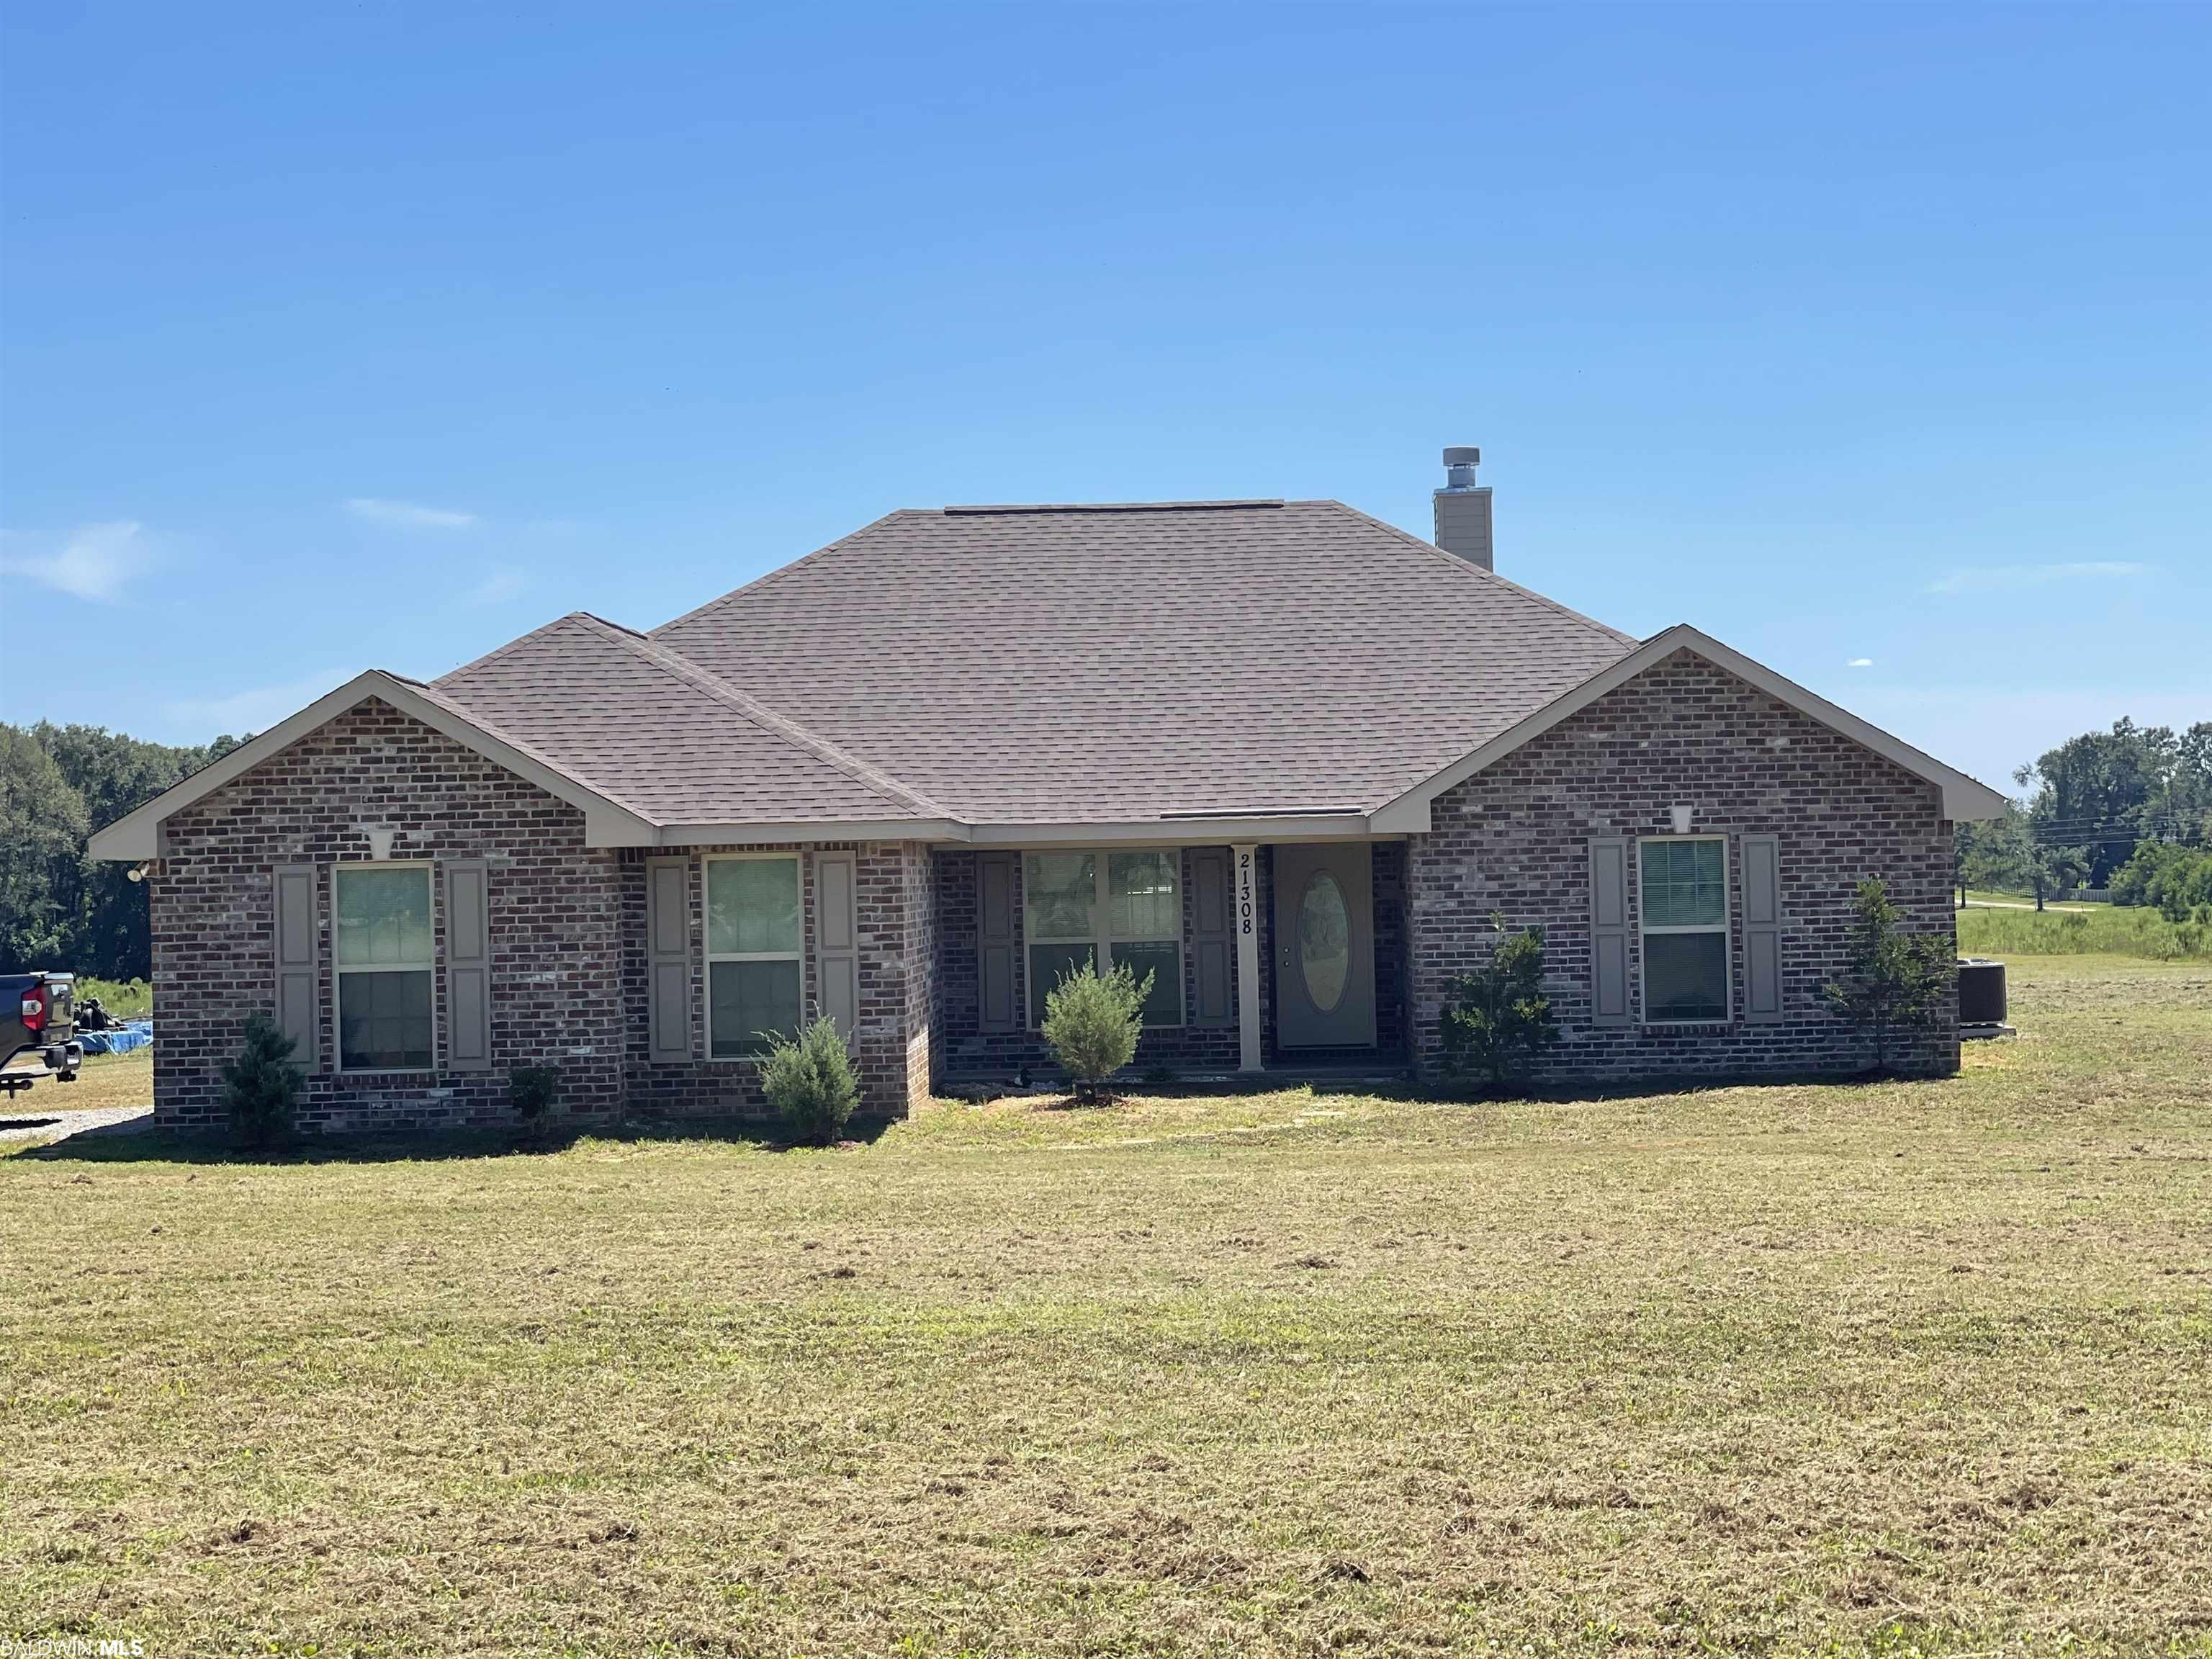 This beautiful 2020 build on 5 acres is an absolute MUST see!! It has a gold fortified roof that survived Sally with absolutely NO damage and the home is still under its 1 year builder warranty!! If you are looking for peaceful, country living while still being close to everything then this mini estate is perfect for you. There are also many horse farms nearby!! The inside of this beautiful home has a great split floor plan, formal dining, eat in kitchen, 2 car garage, covered patio, large bedrooms, and granite countertops in the kitchen. Again, this property is a must-see and won't last long!